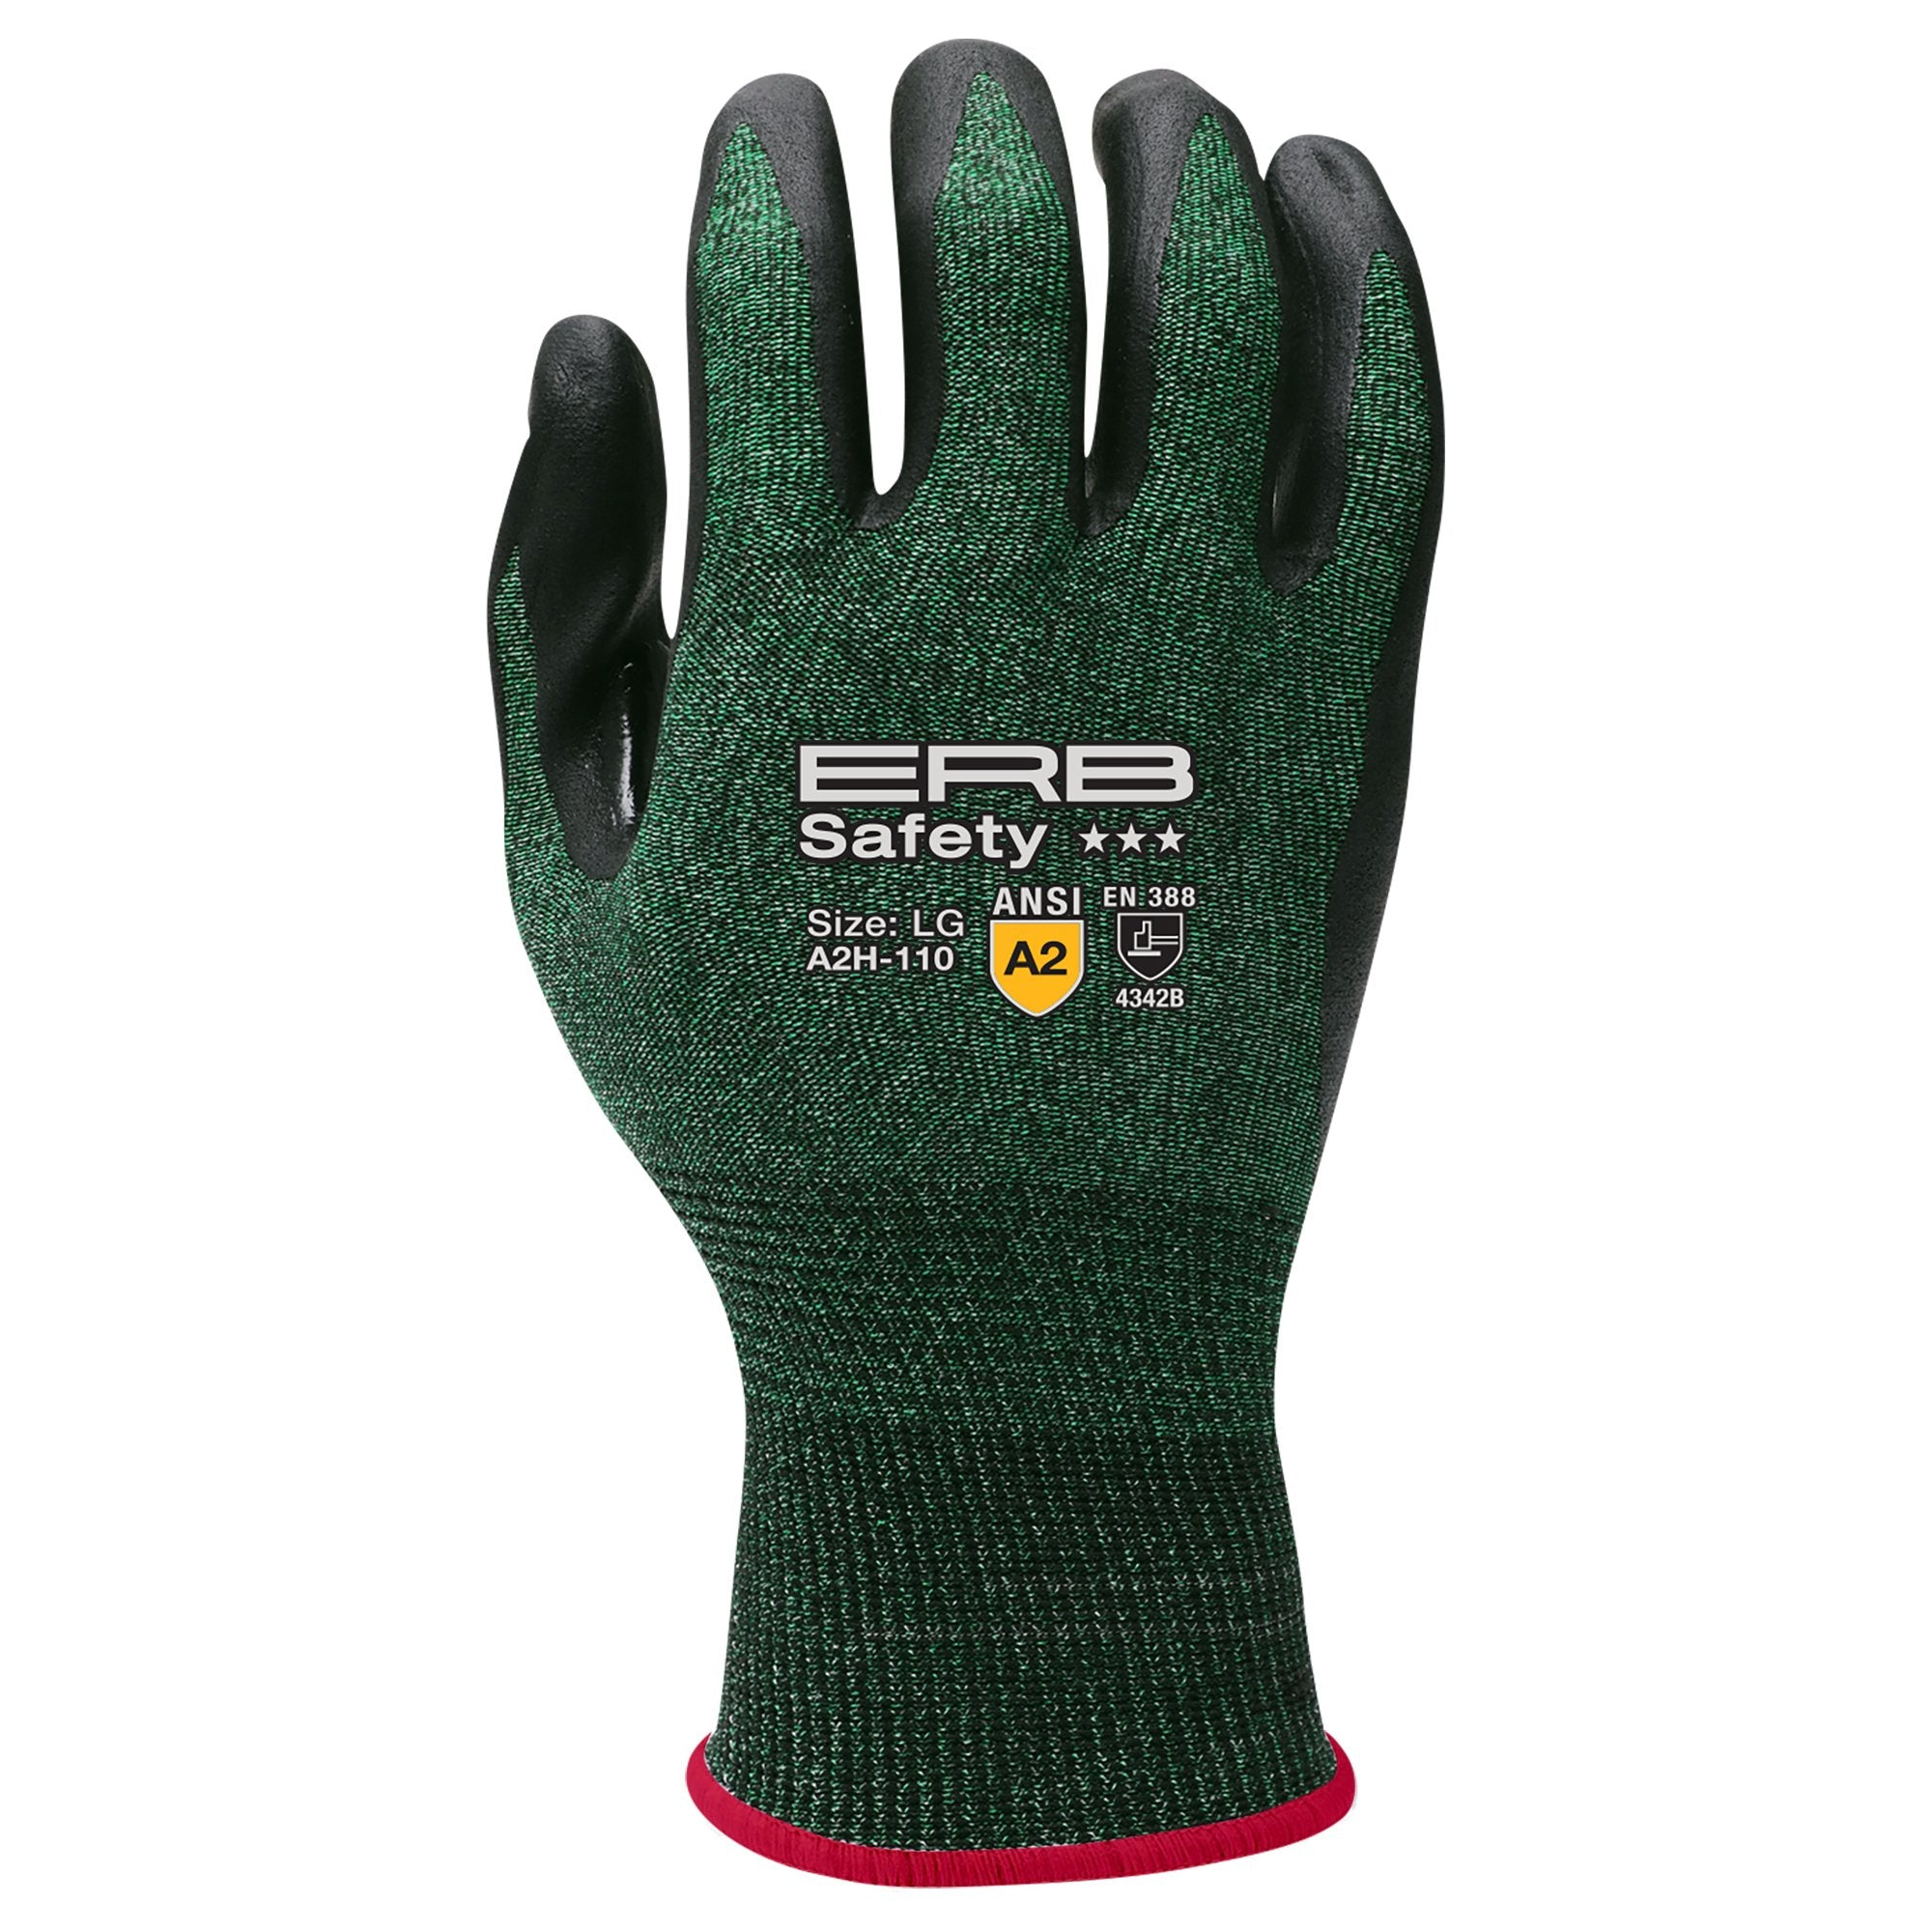 A2H-110 HPPE Cut Glove with Nitrile Micro-Foam Coating 1pair